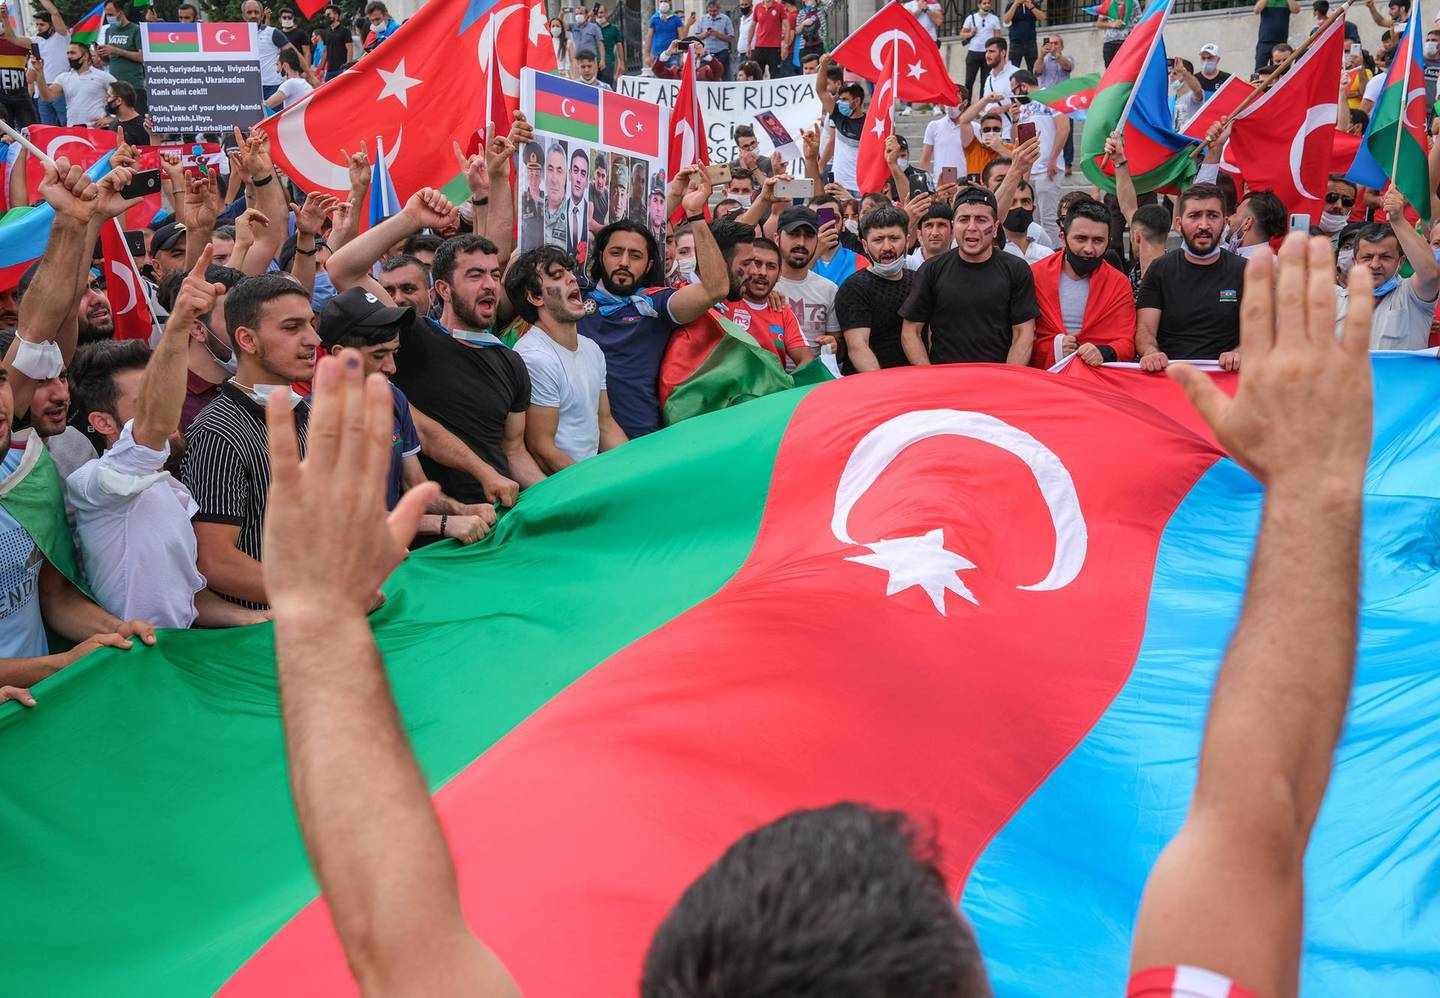 epa08554738 Ultra-nationalist Azerbaijani and Turkish people hold their national flags as they shouts slogans against Armenia in front of the Istanbul University in Istanbul, Turkey, 19 July 2020. The two neighbors have been locked in conflict over Nagorno-Karabakh, a region of Azerbaijan that has been under the control of ethnic Armenian forces backed by Armenia since a war there ended in 1994. At least 16 people, including an army general, were killed in border clashes between Armenia and Azerbaijan.  EPA/SEDAT SUNA